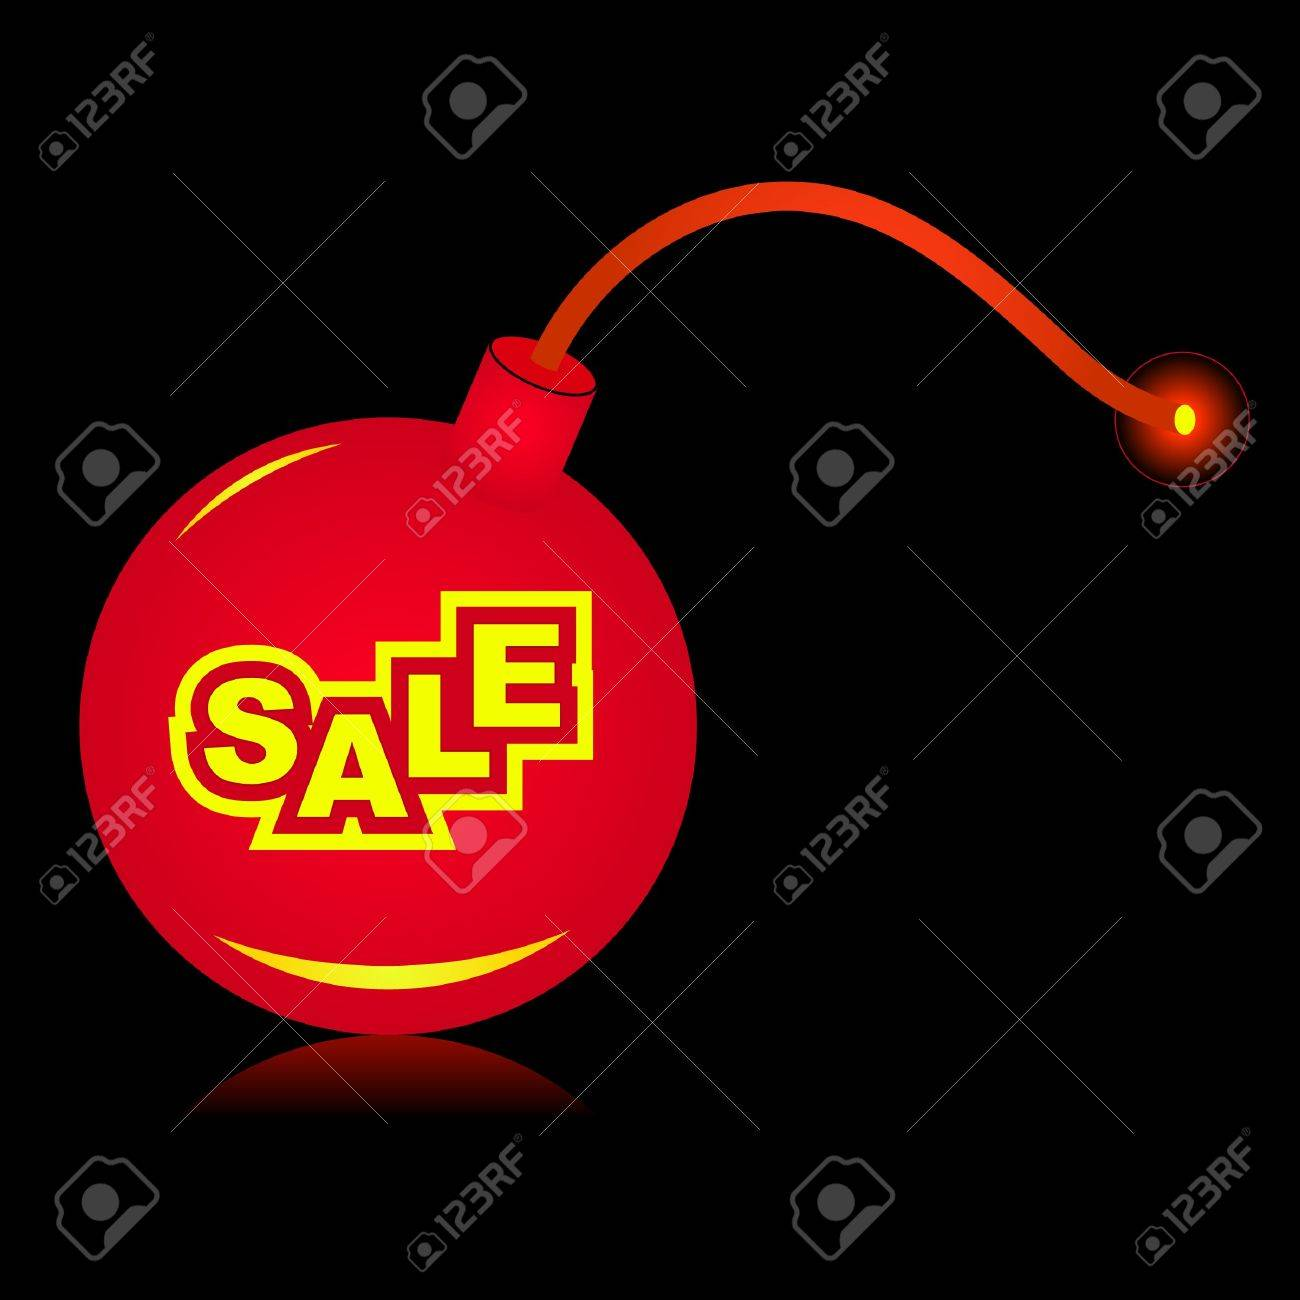 Bomb before explosion. Stock Vector - 7819749